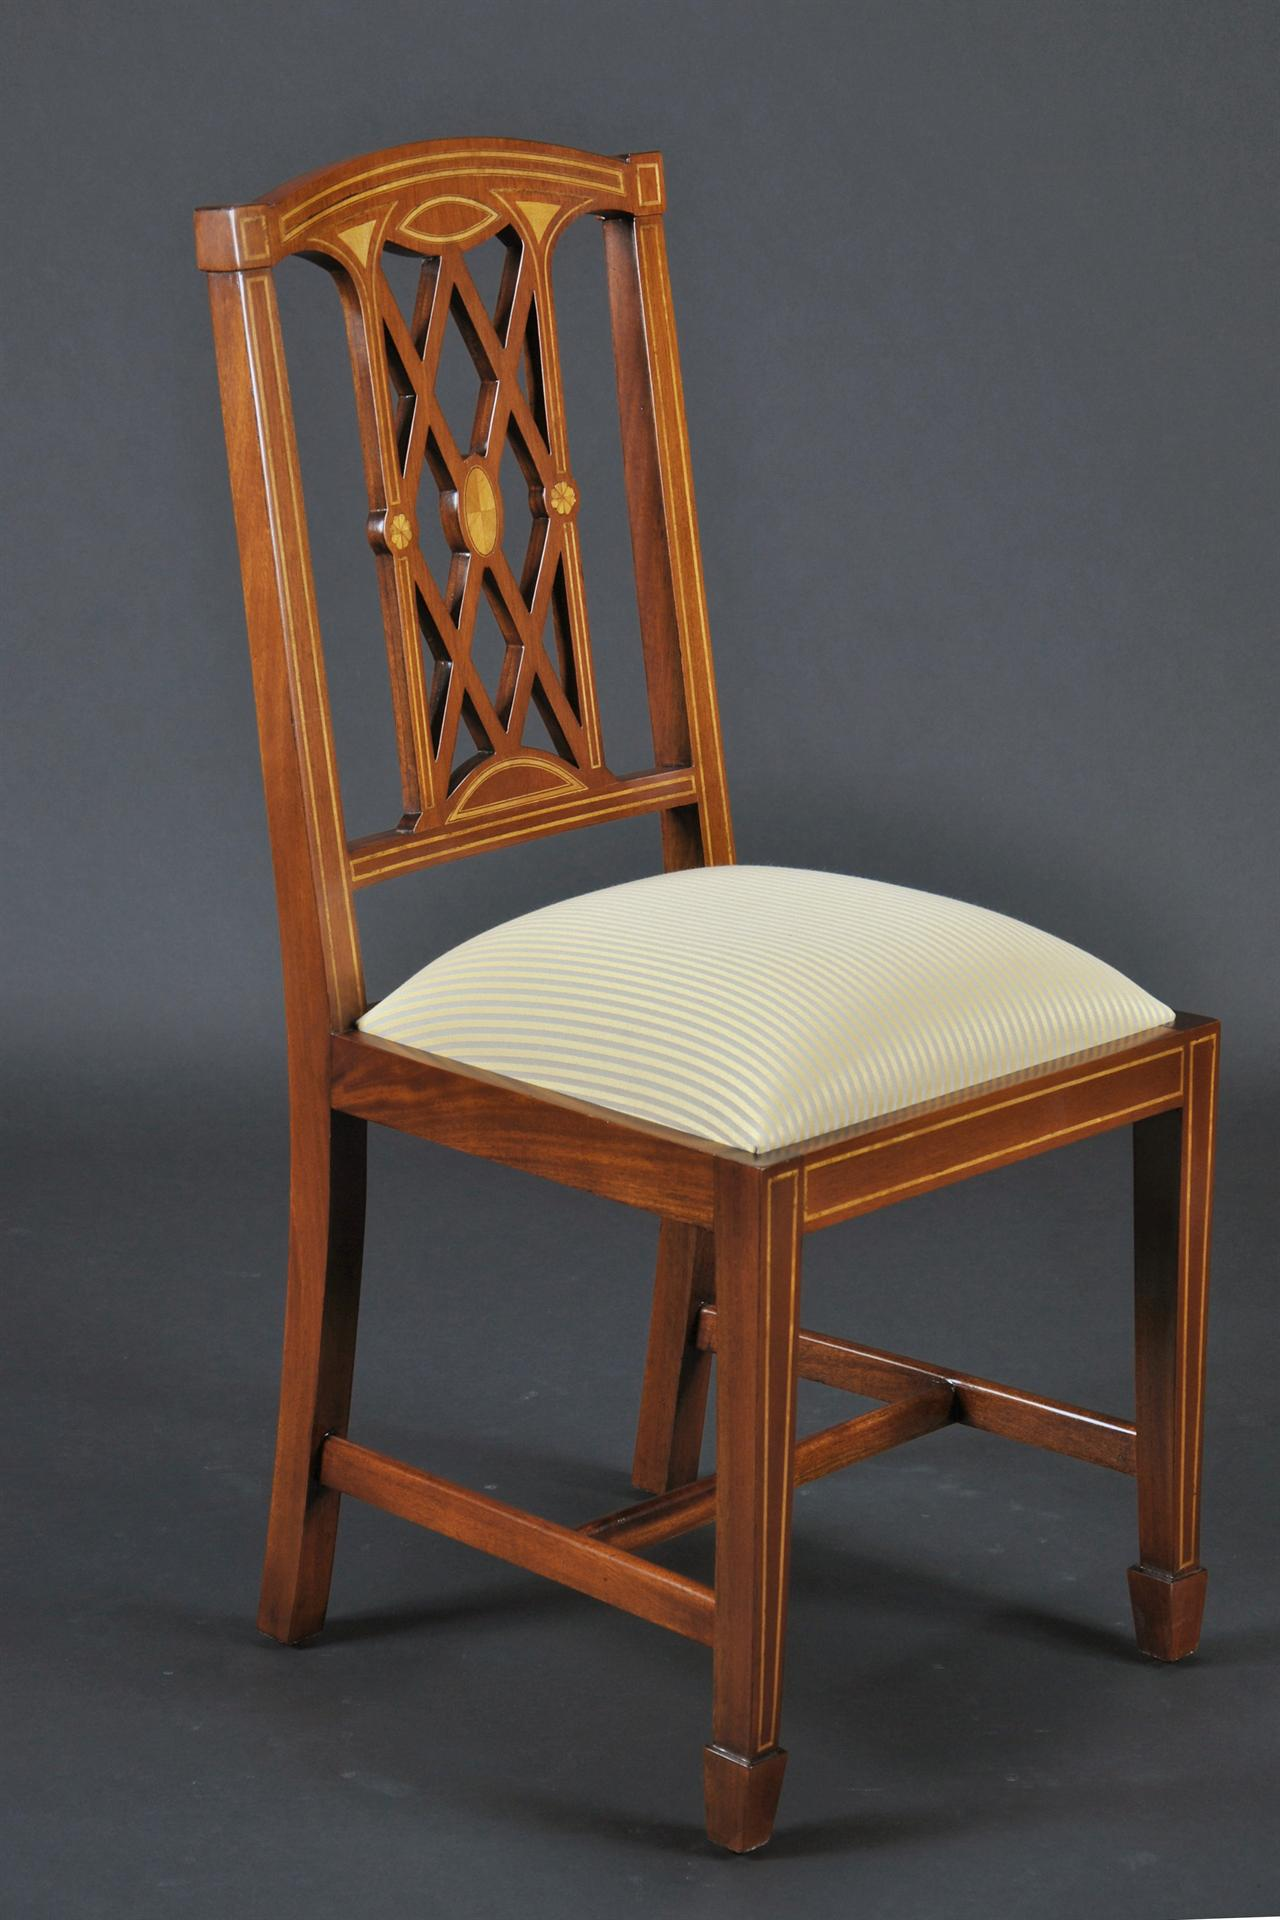 Edwardian Inlaid Solid Mahogany Dining Room Chairs Federal or Georgian style